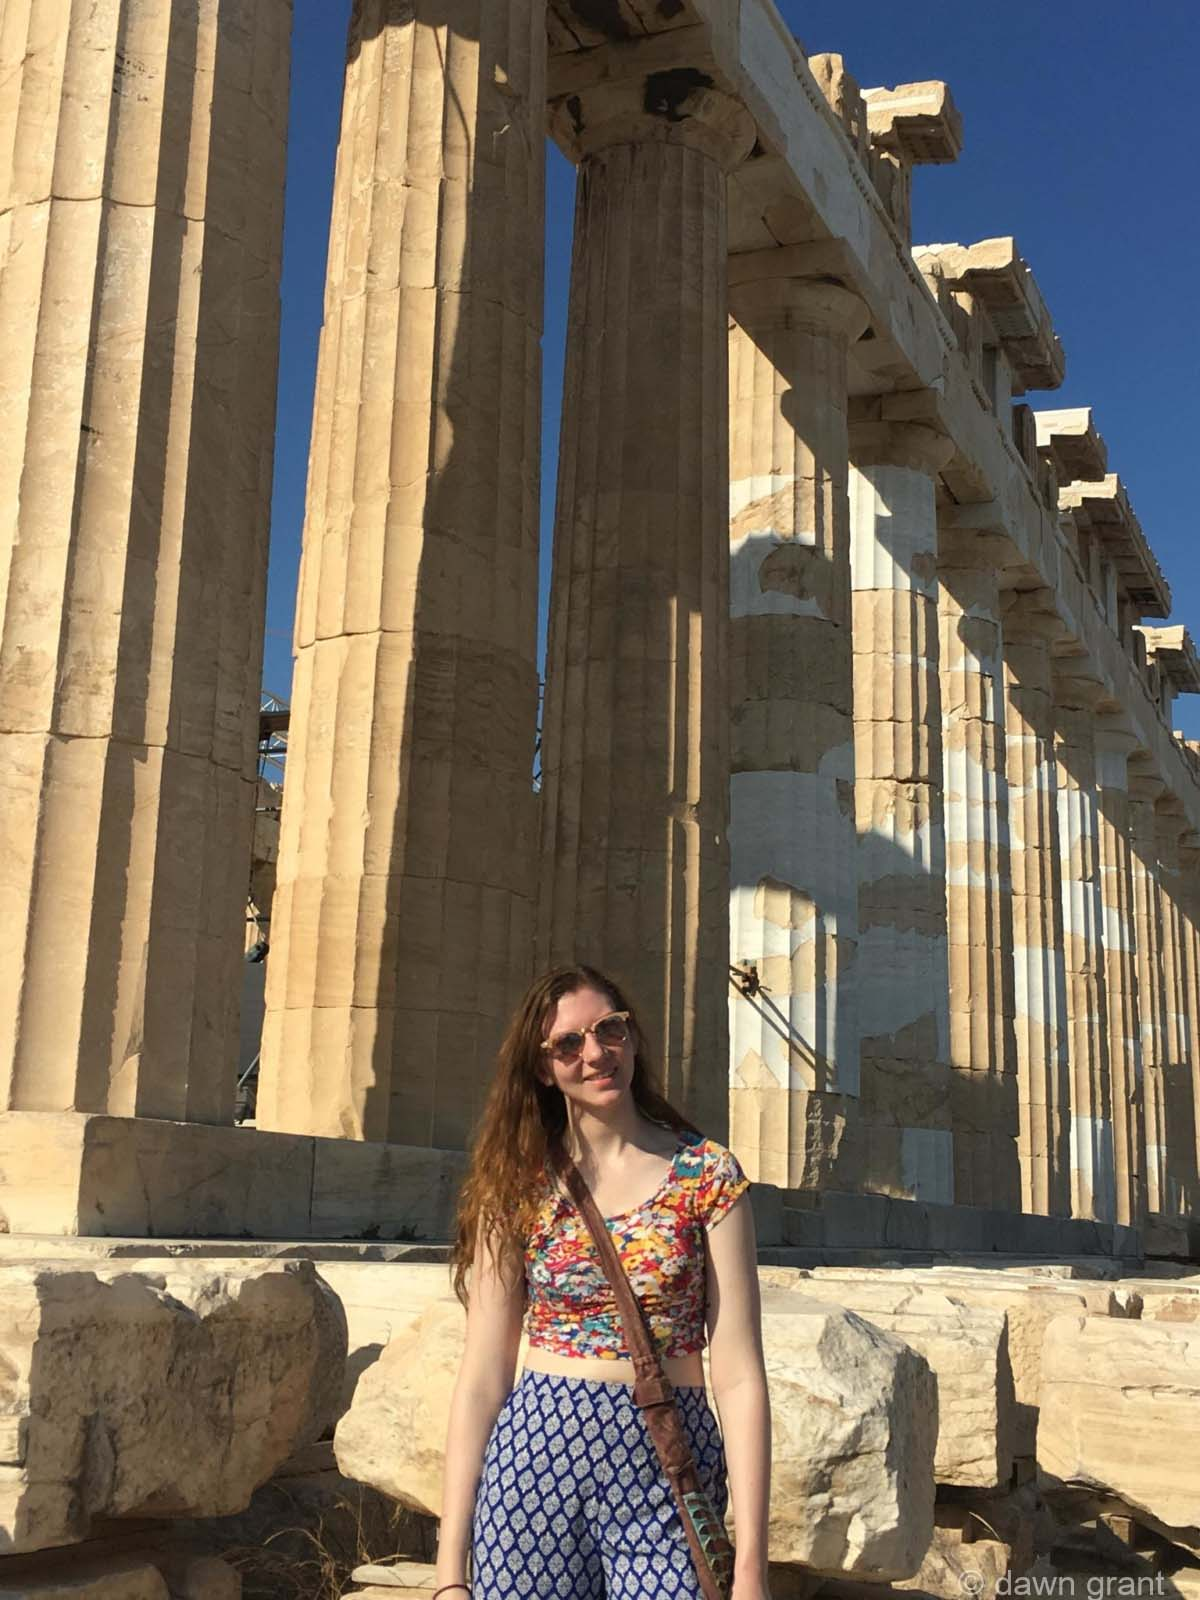 A young woman stands in front of the Parthenon ruins showing large columns that are obviously very old.